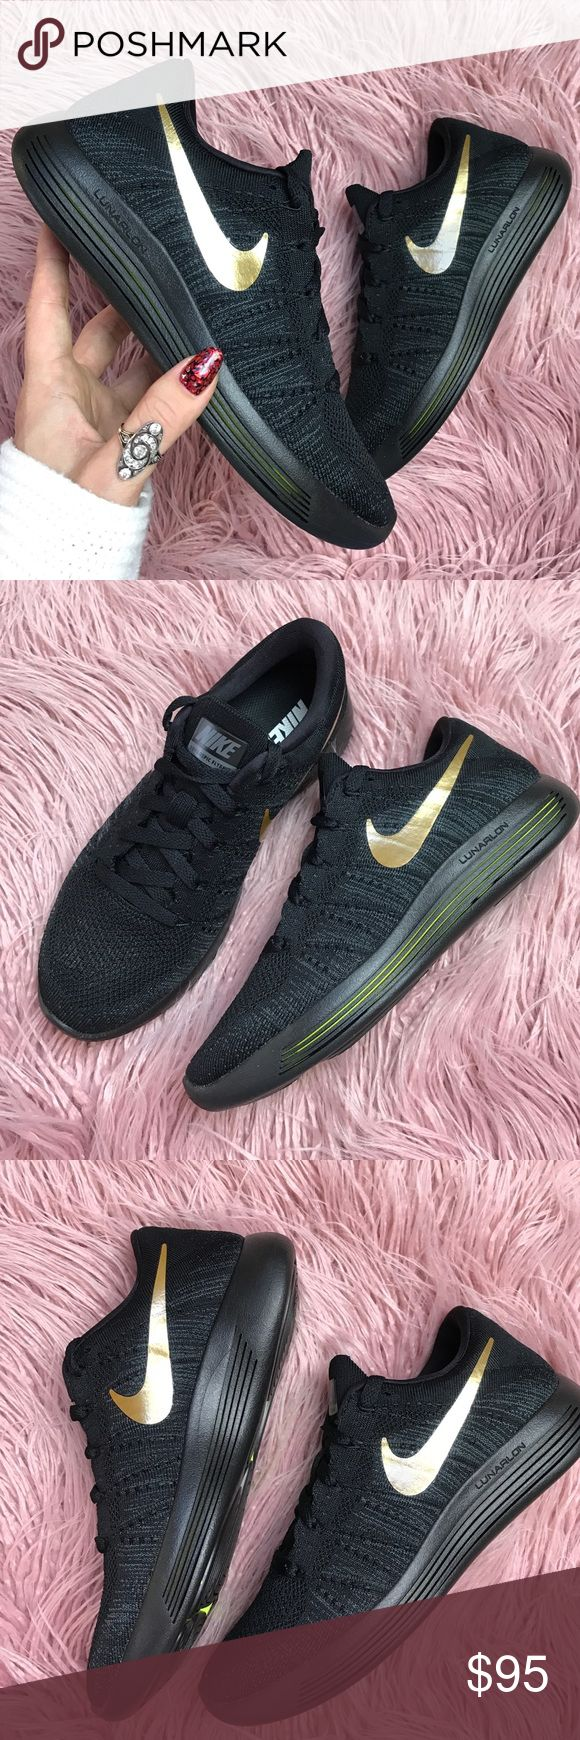 NWT Nike ID black gold swoosh Flyknit Brand new no box custom made Nike ID lunarepic Flyknit size men's 6-women's 7.5,price is firm!! •Lunarlon cushioning helps absorb impact and creates a smooth heel-to-toe transition •Raised rubber on the outsole cushions landings where you need it most •Forefoot perforations enhance breathability •Flywire technology integrates with the laces for a secure, locked-down fit Nike Shoes Sneakers